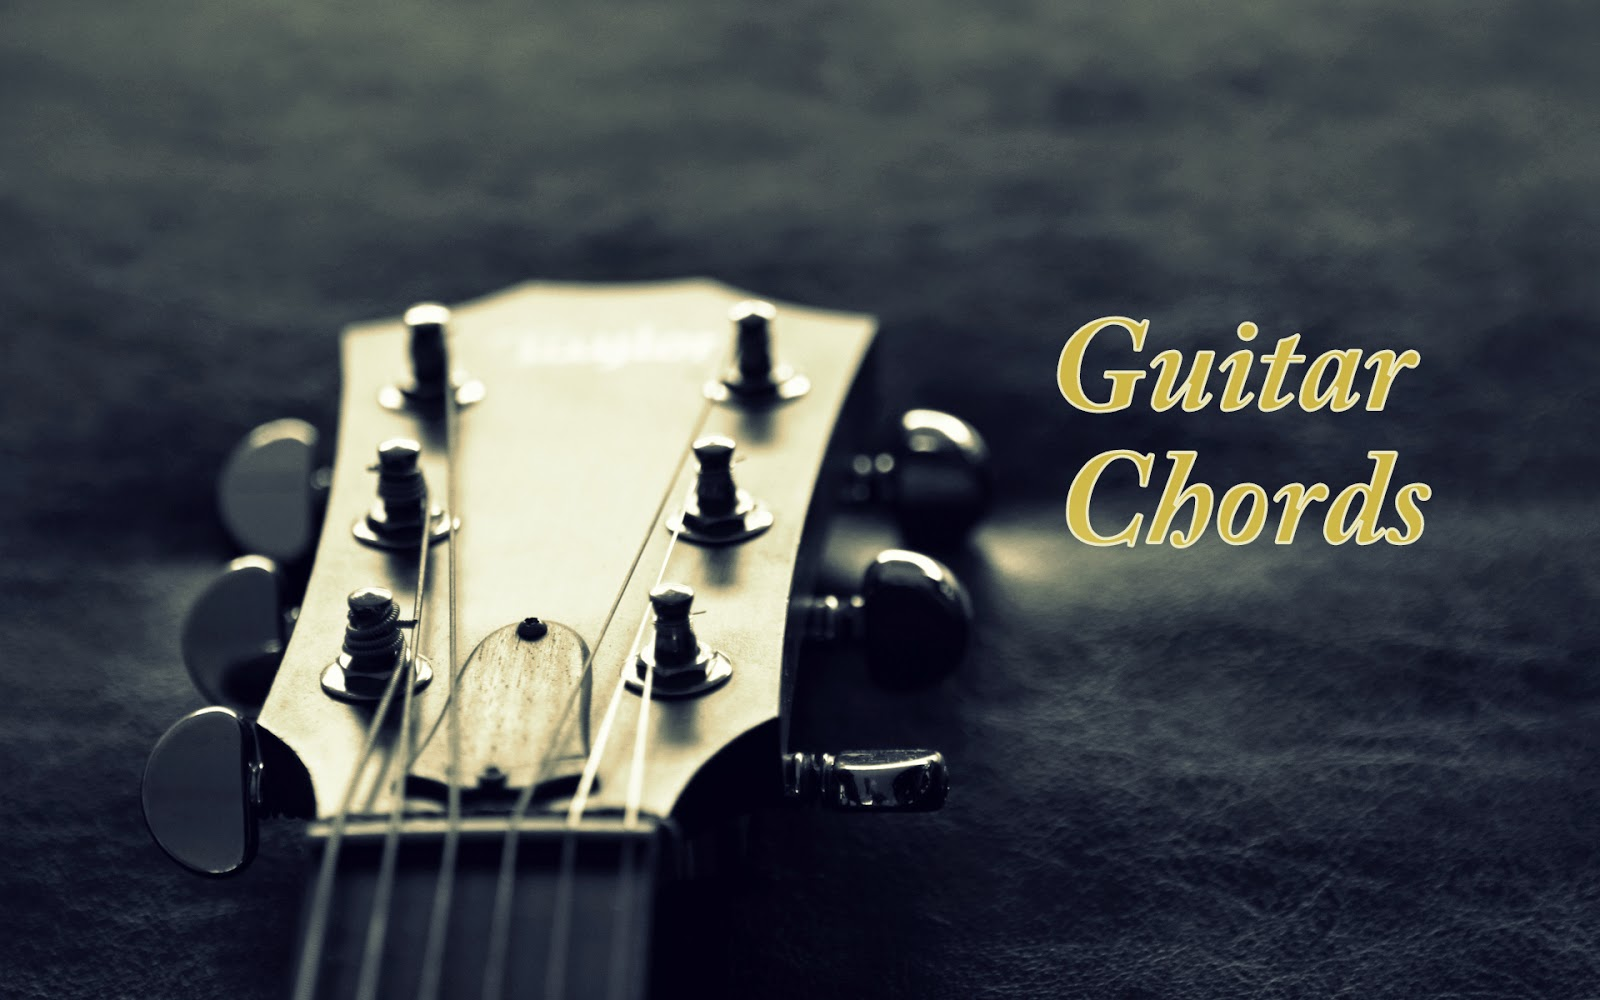 Guitar Chords for Saajna (unplugged) - I Me Aur Main